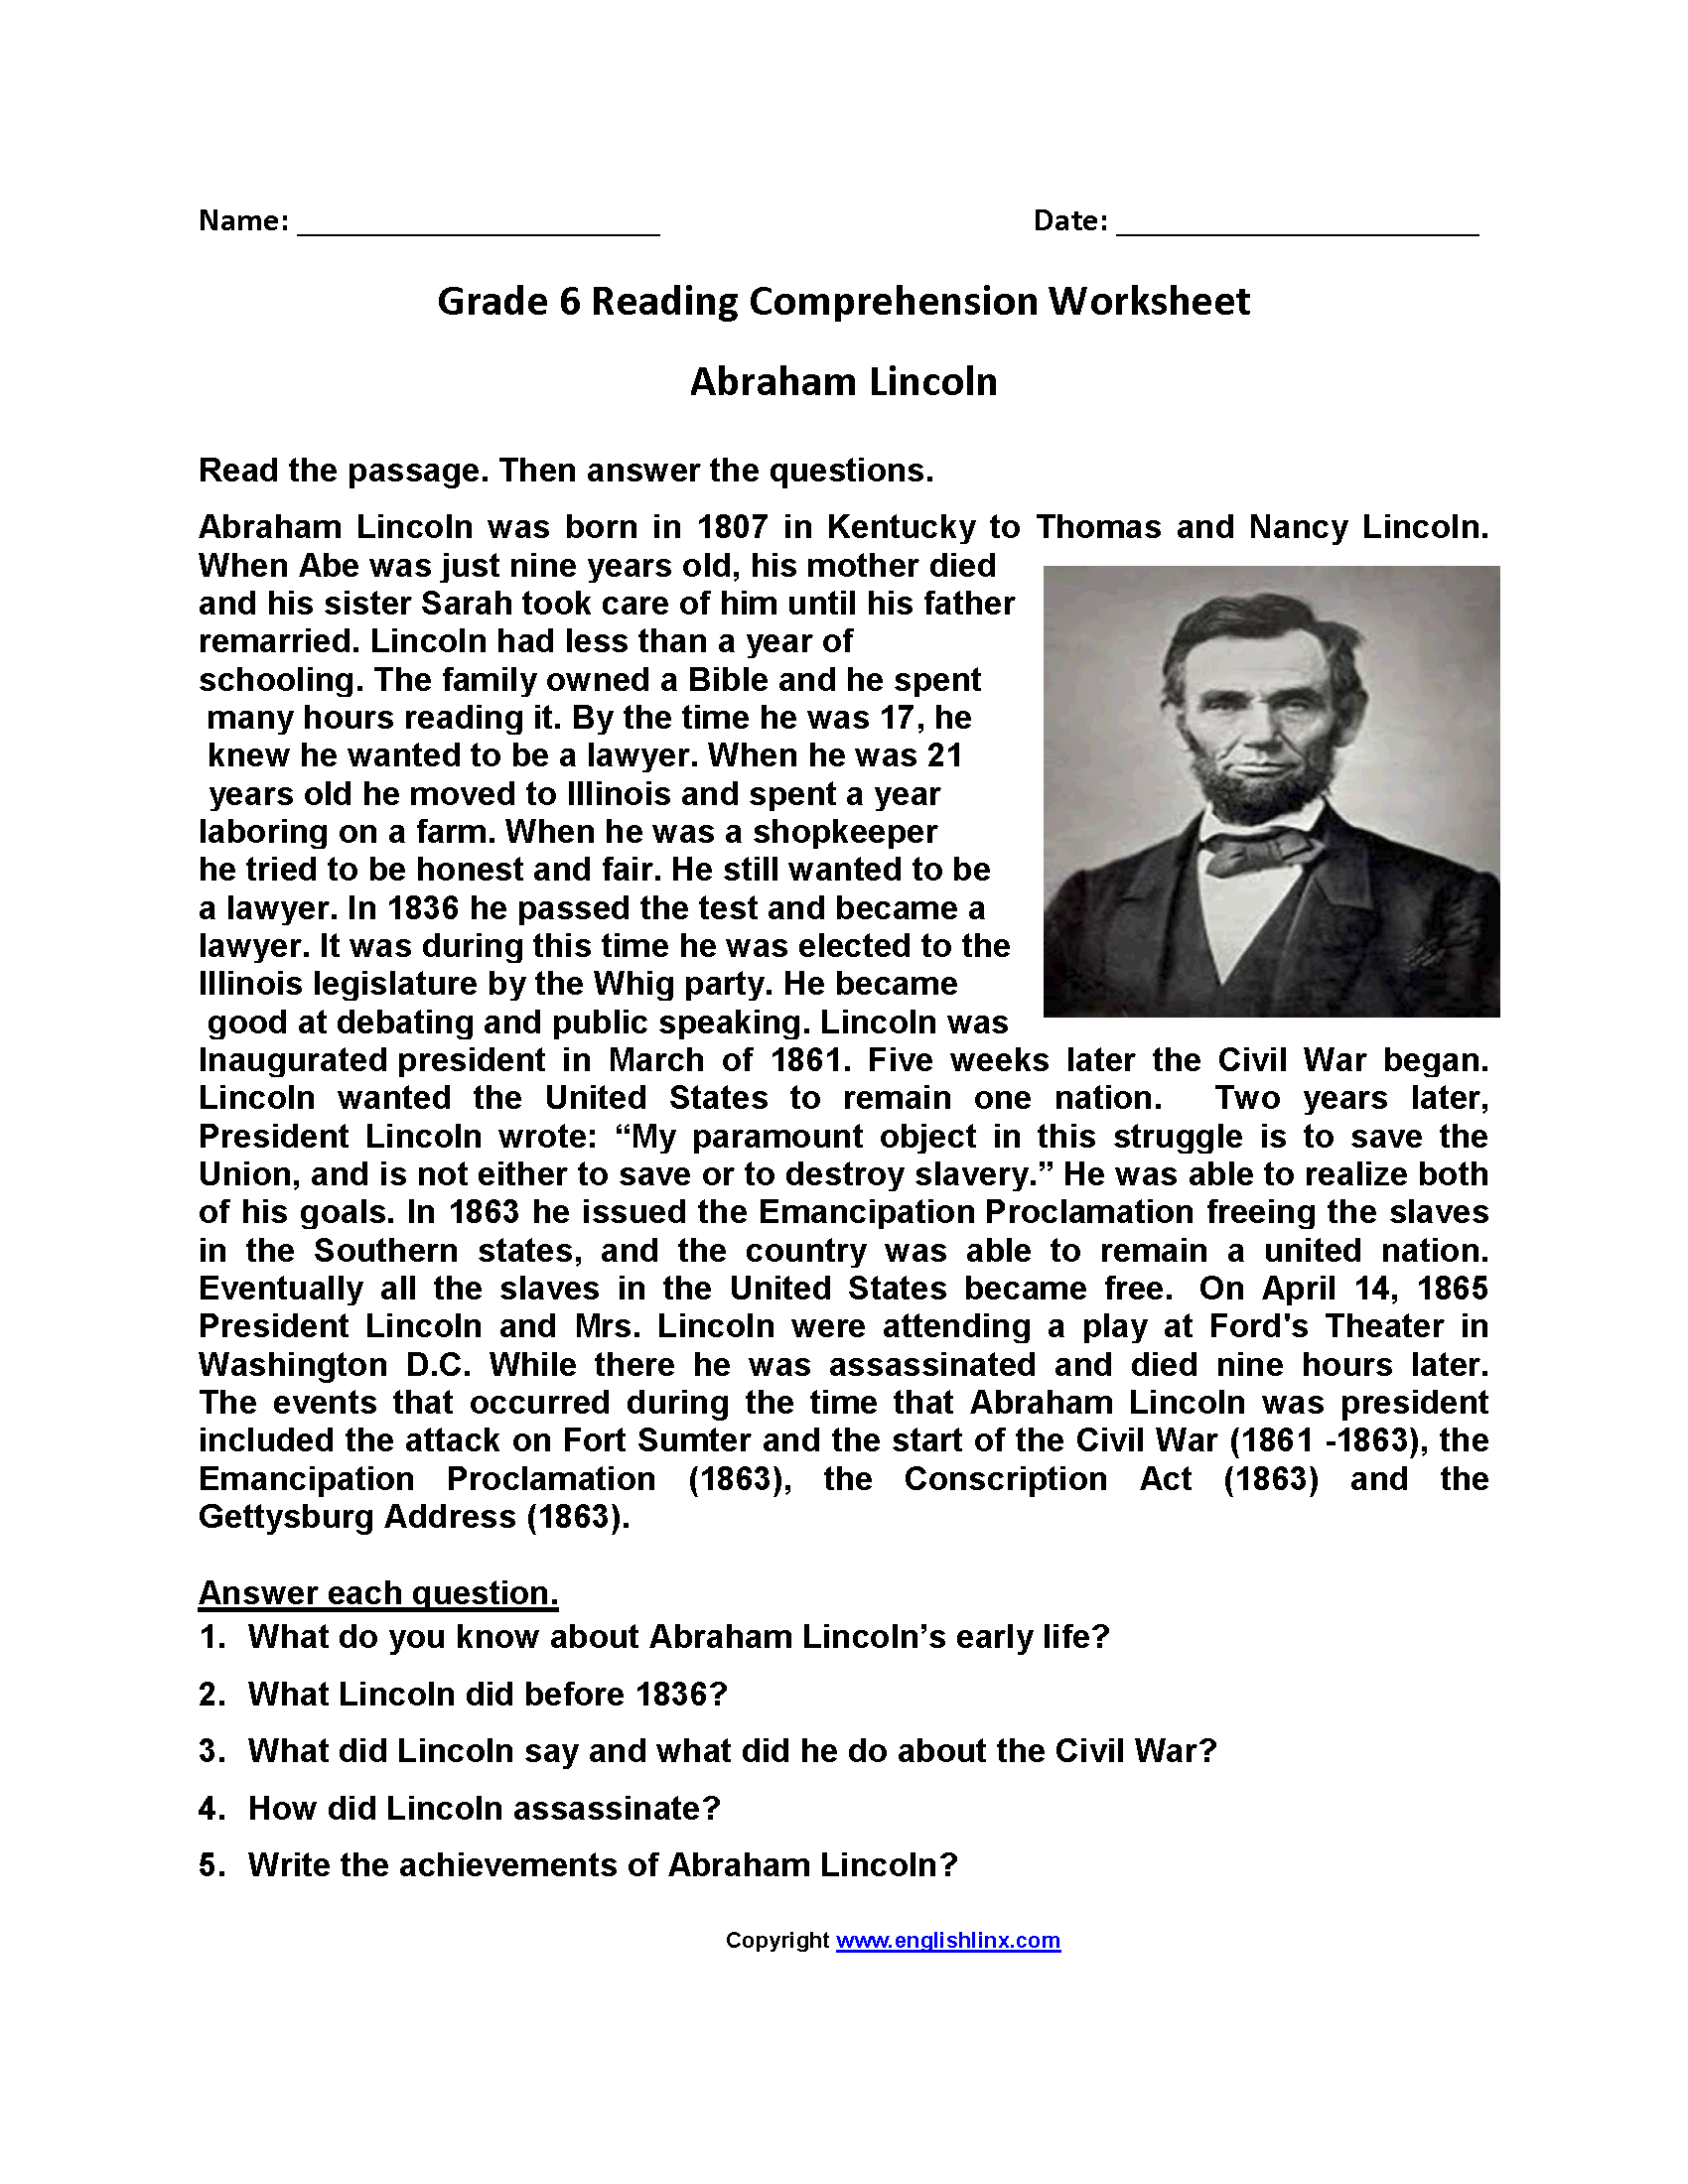 Worksheets 6th Grade Reading Comprehension Worksheets Free reading worksheets sixth grade worksheets